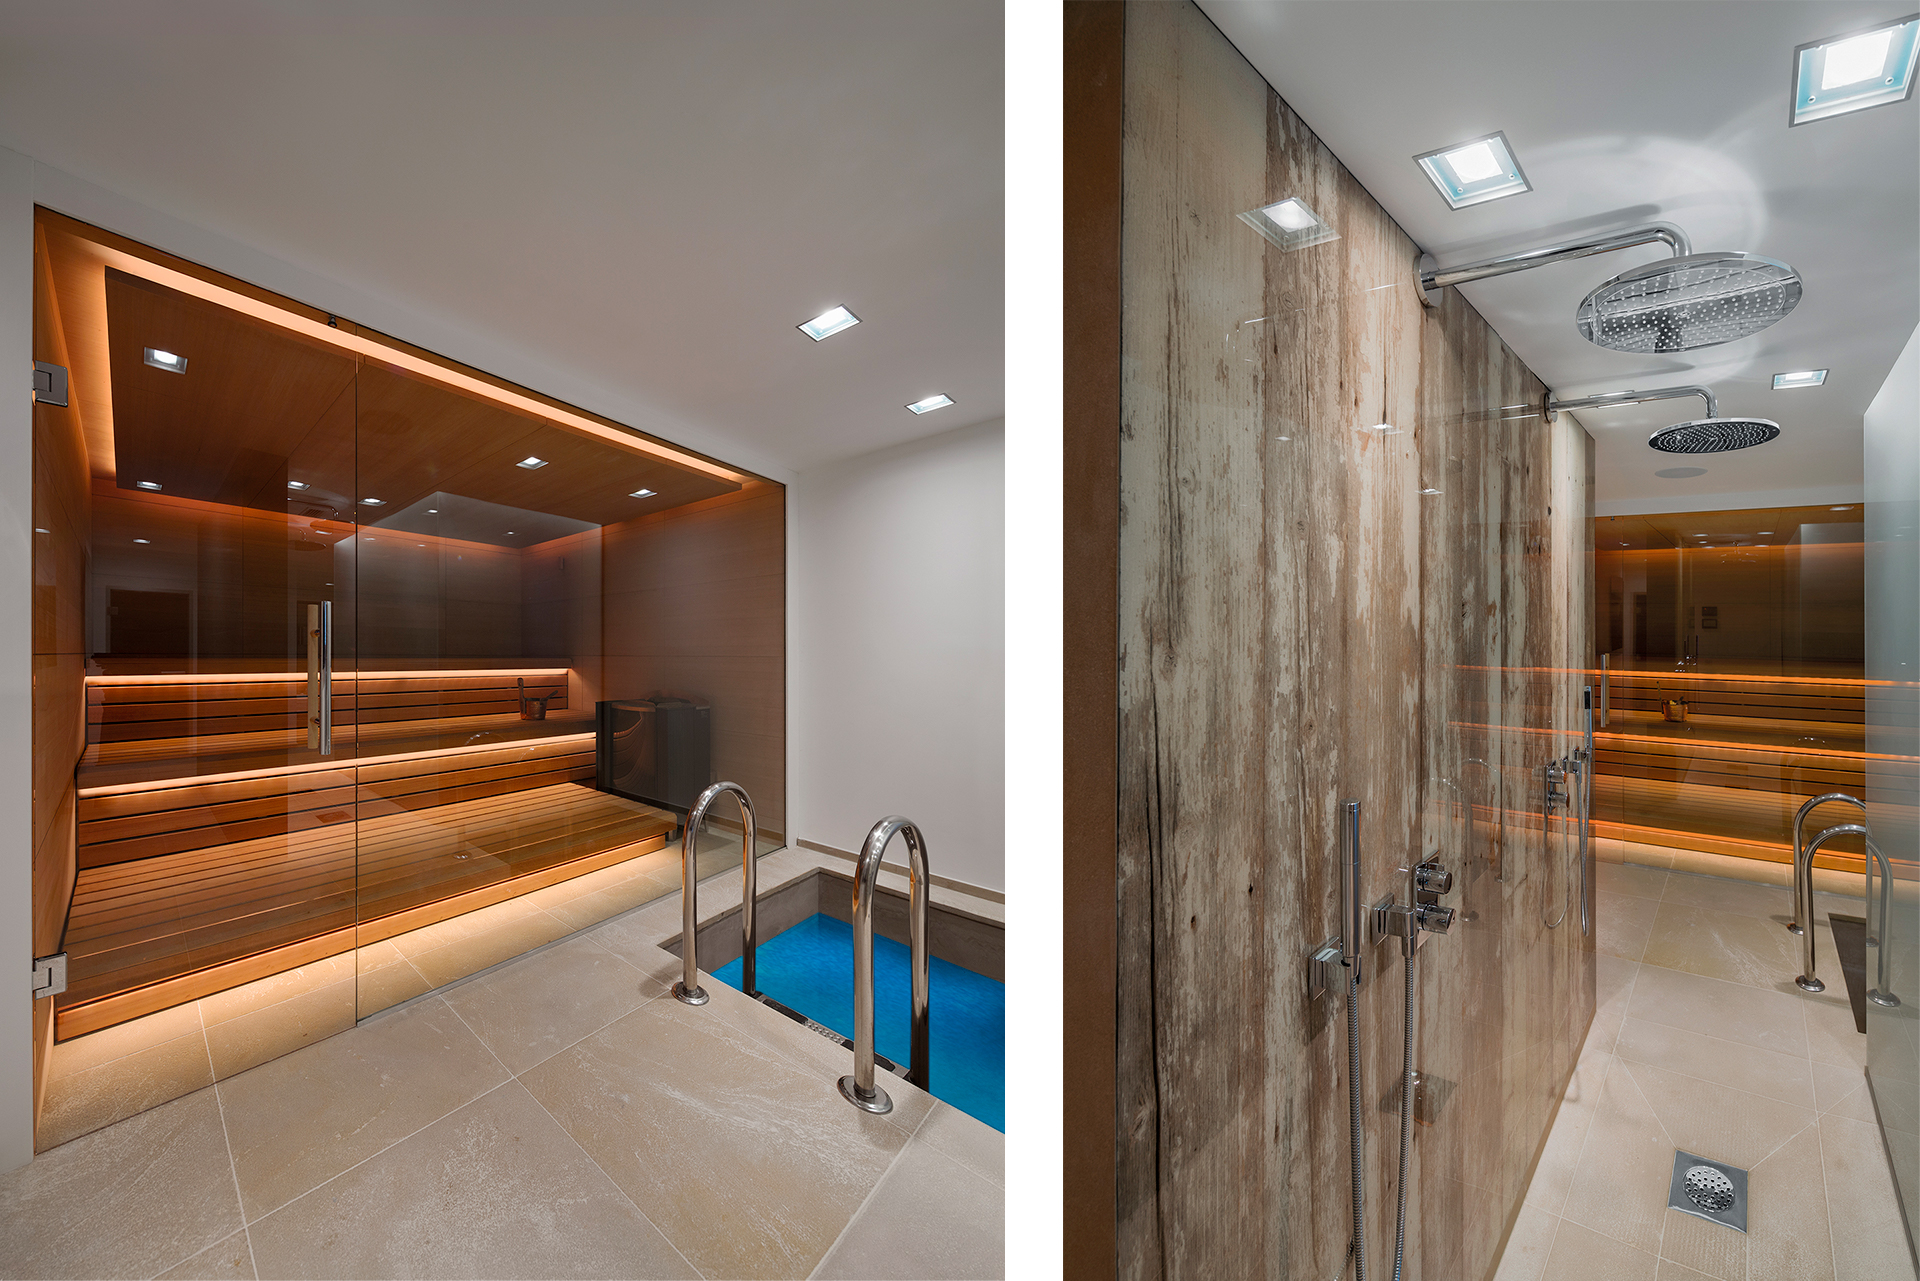 A private sauna with glass seperator and cooling pool including a rain shower hallway